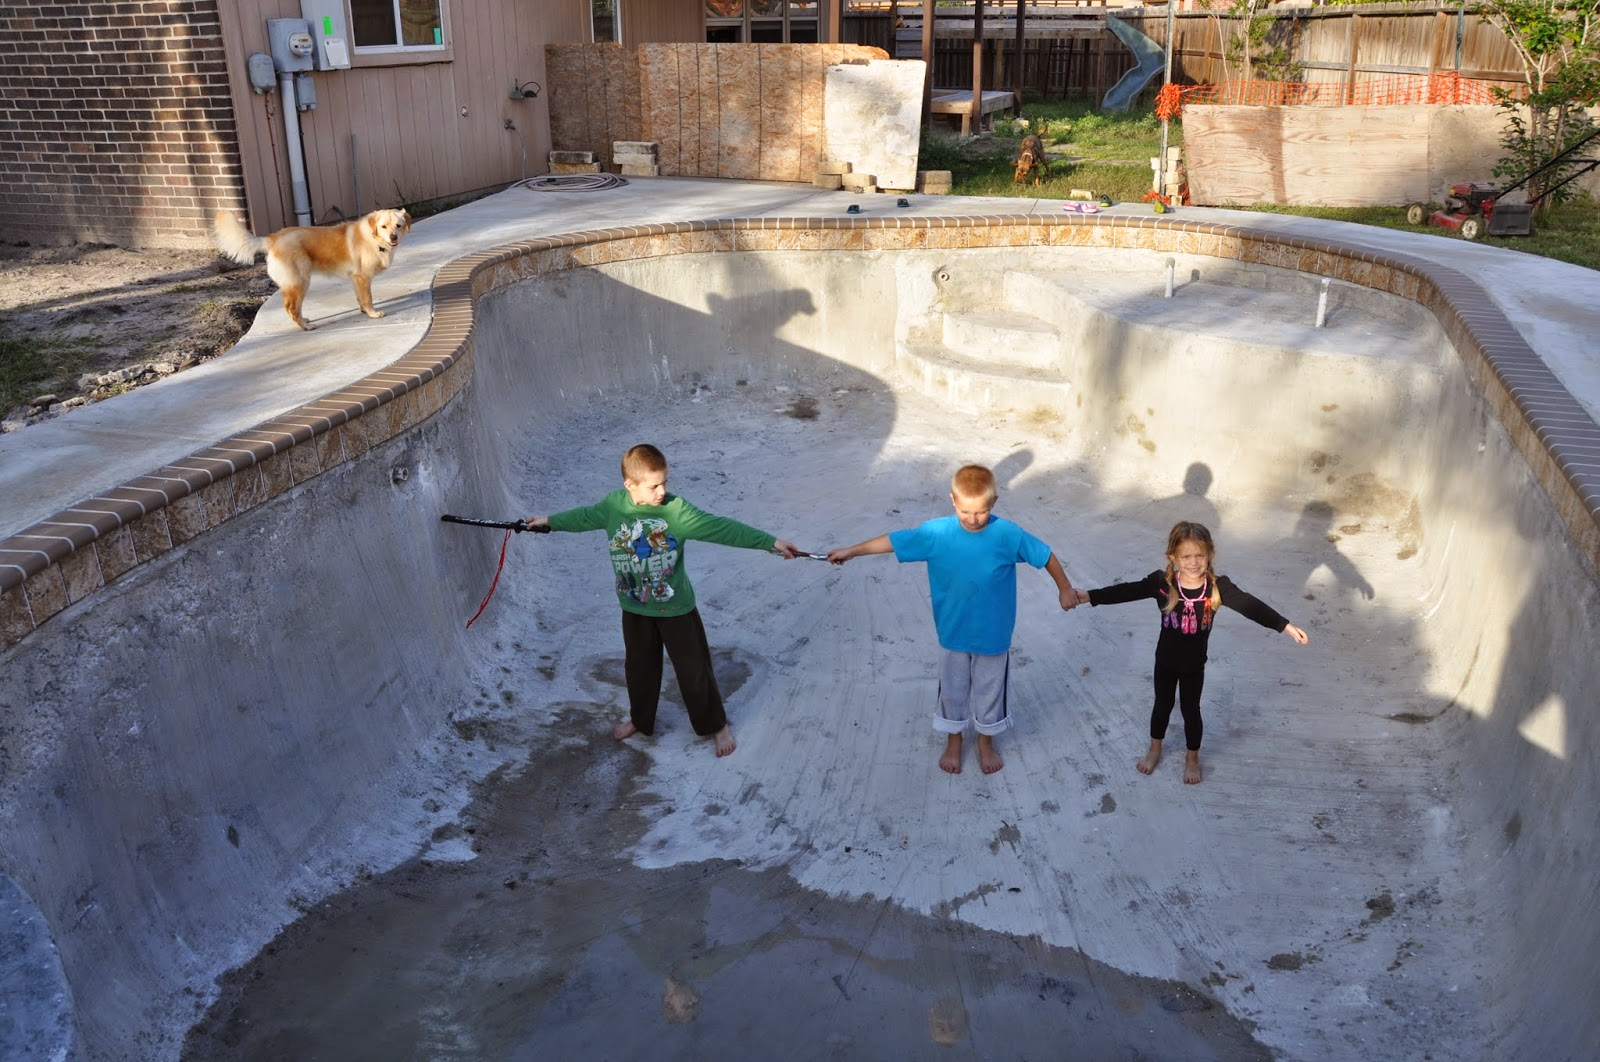 About a week ago, we started letting the kids play inside the pool. Why  not? It wasn't able to serve in any other capacity. However, it made an  awesome ...